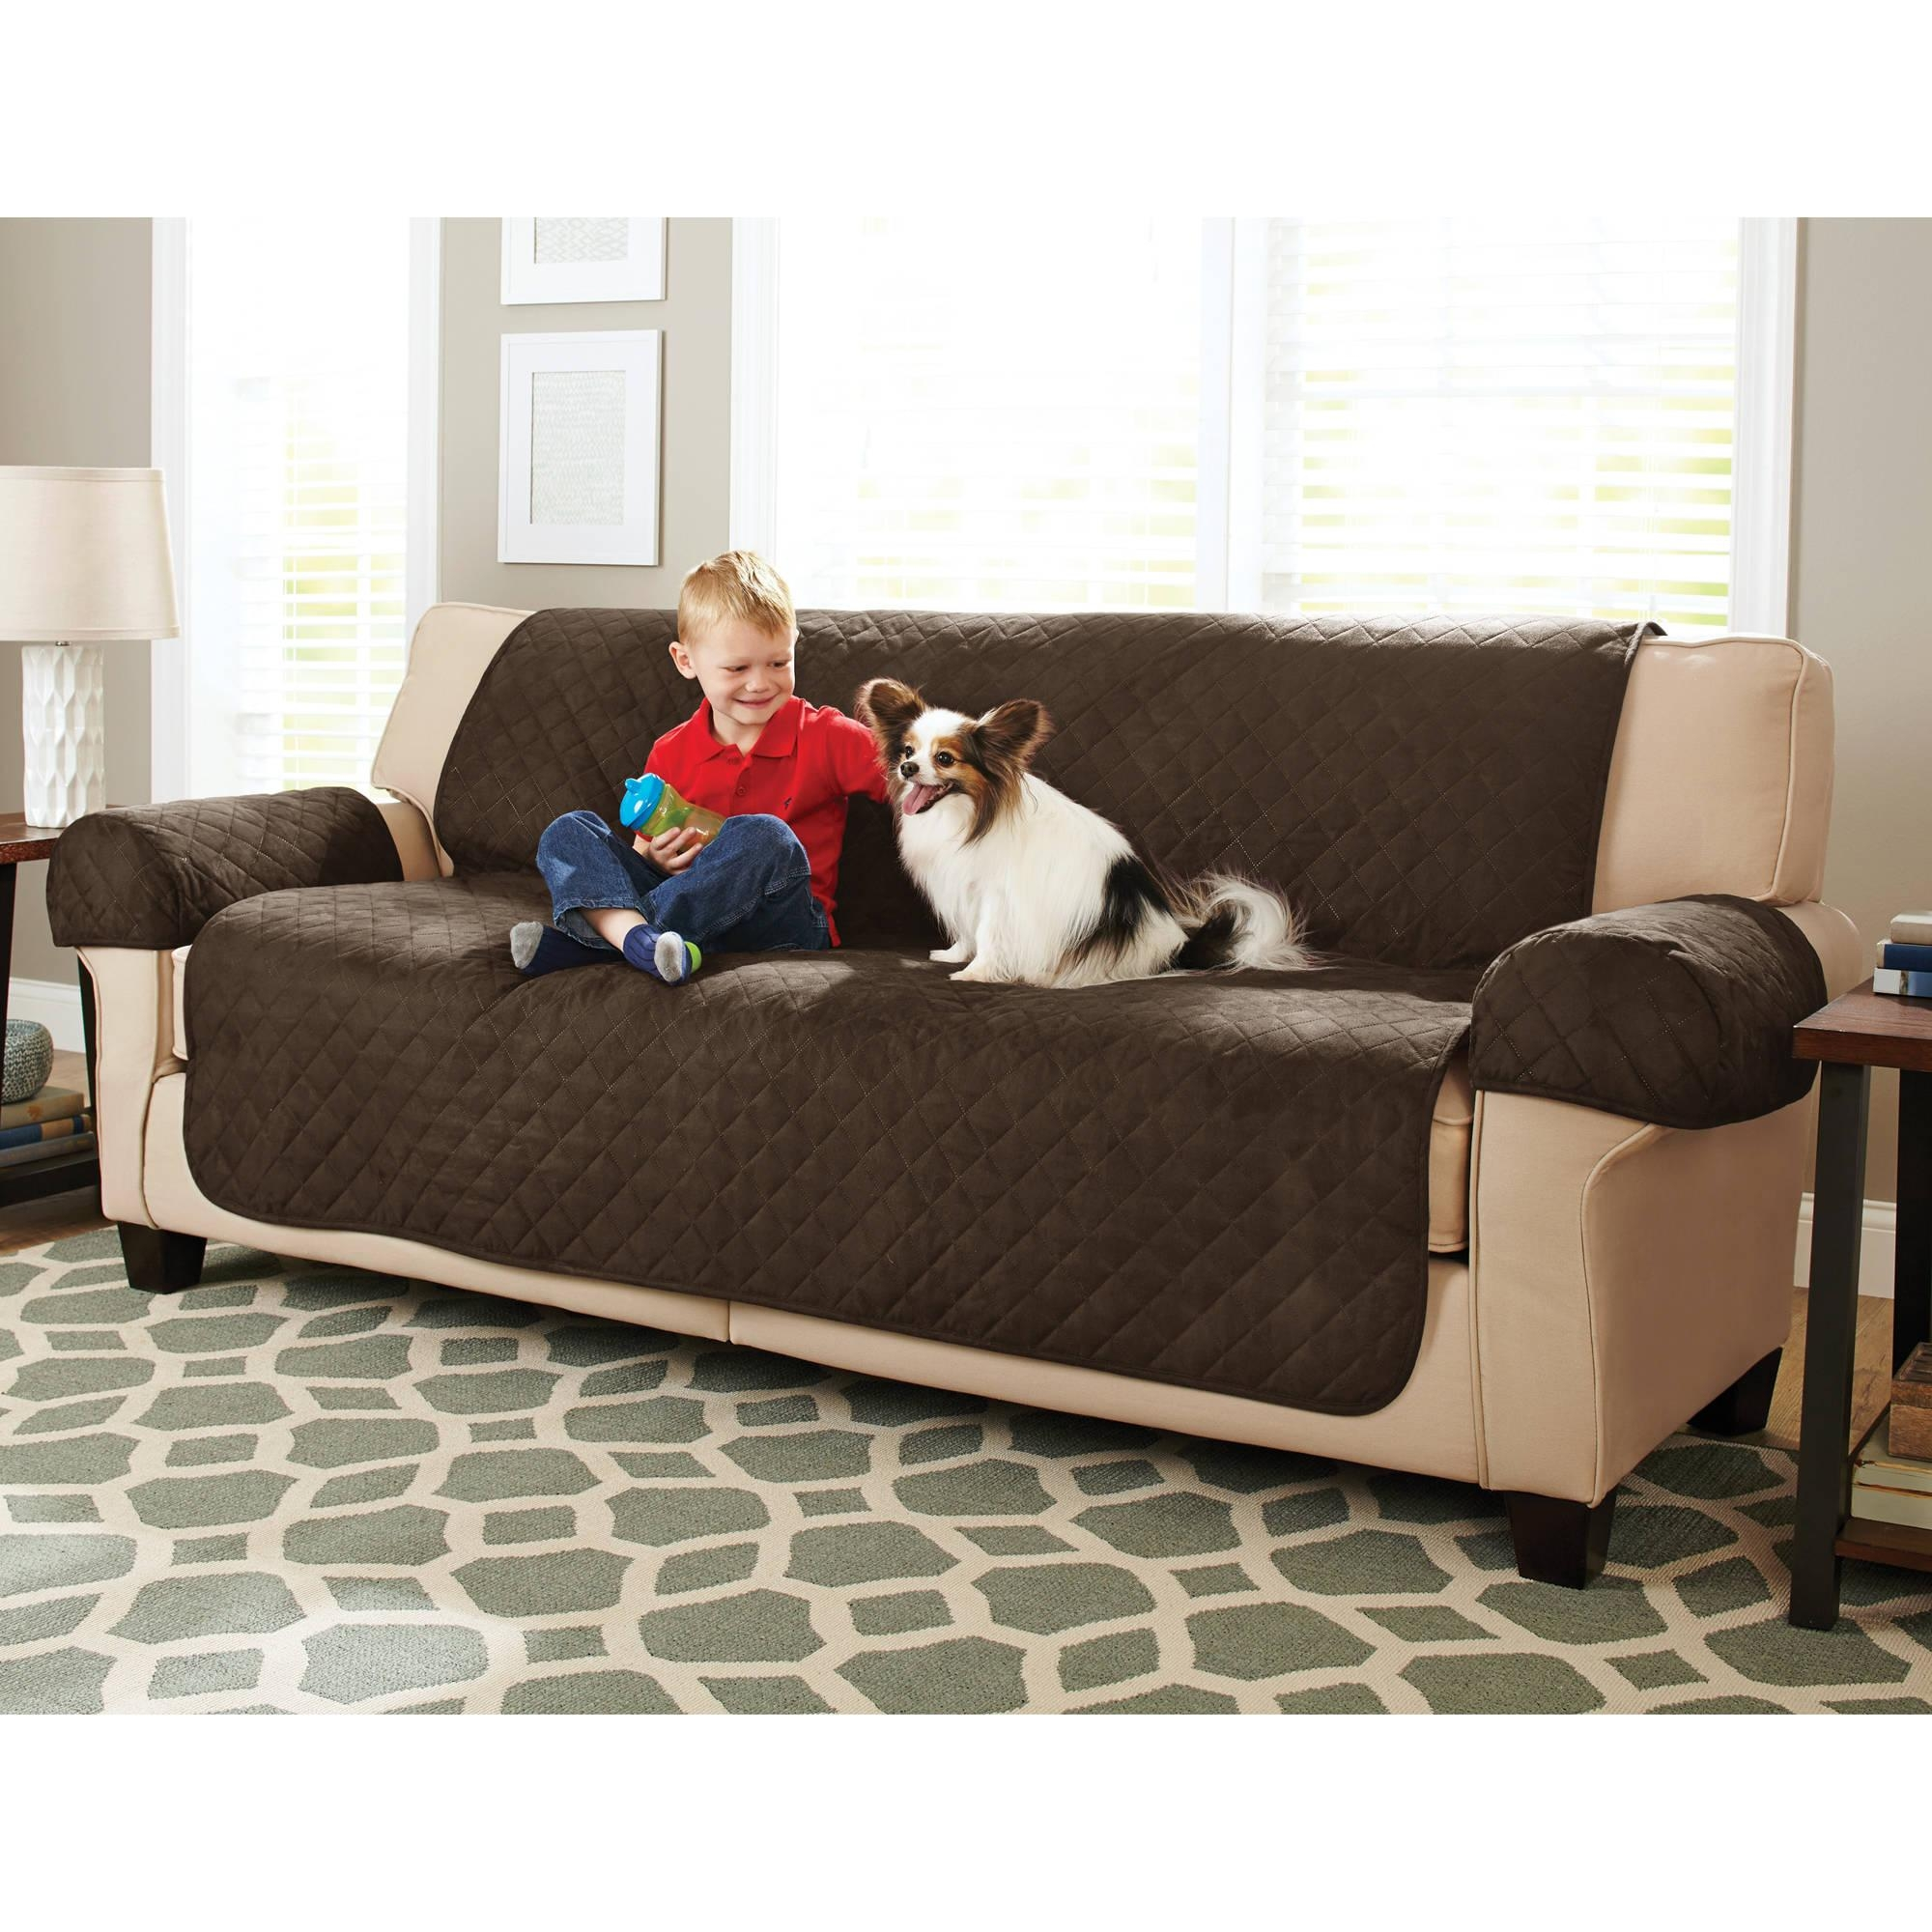 Sofas : Wonderful Loose Sofa Covers Large Couch Covers Replacement For Large Sofa Slipcovers (Image 19 of 23)